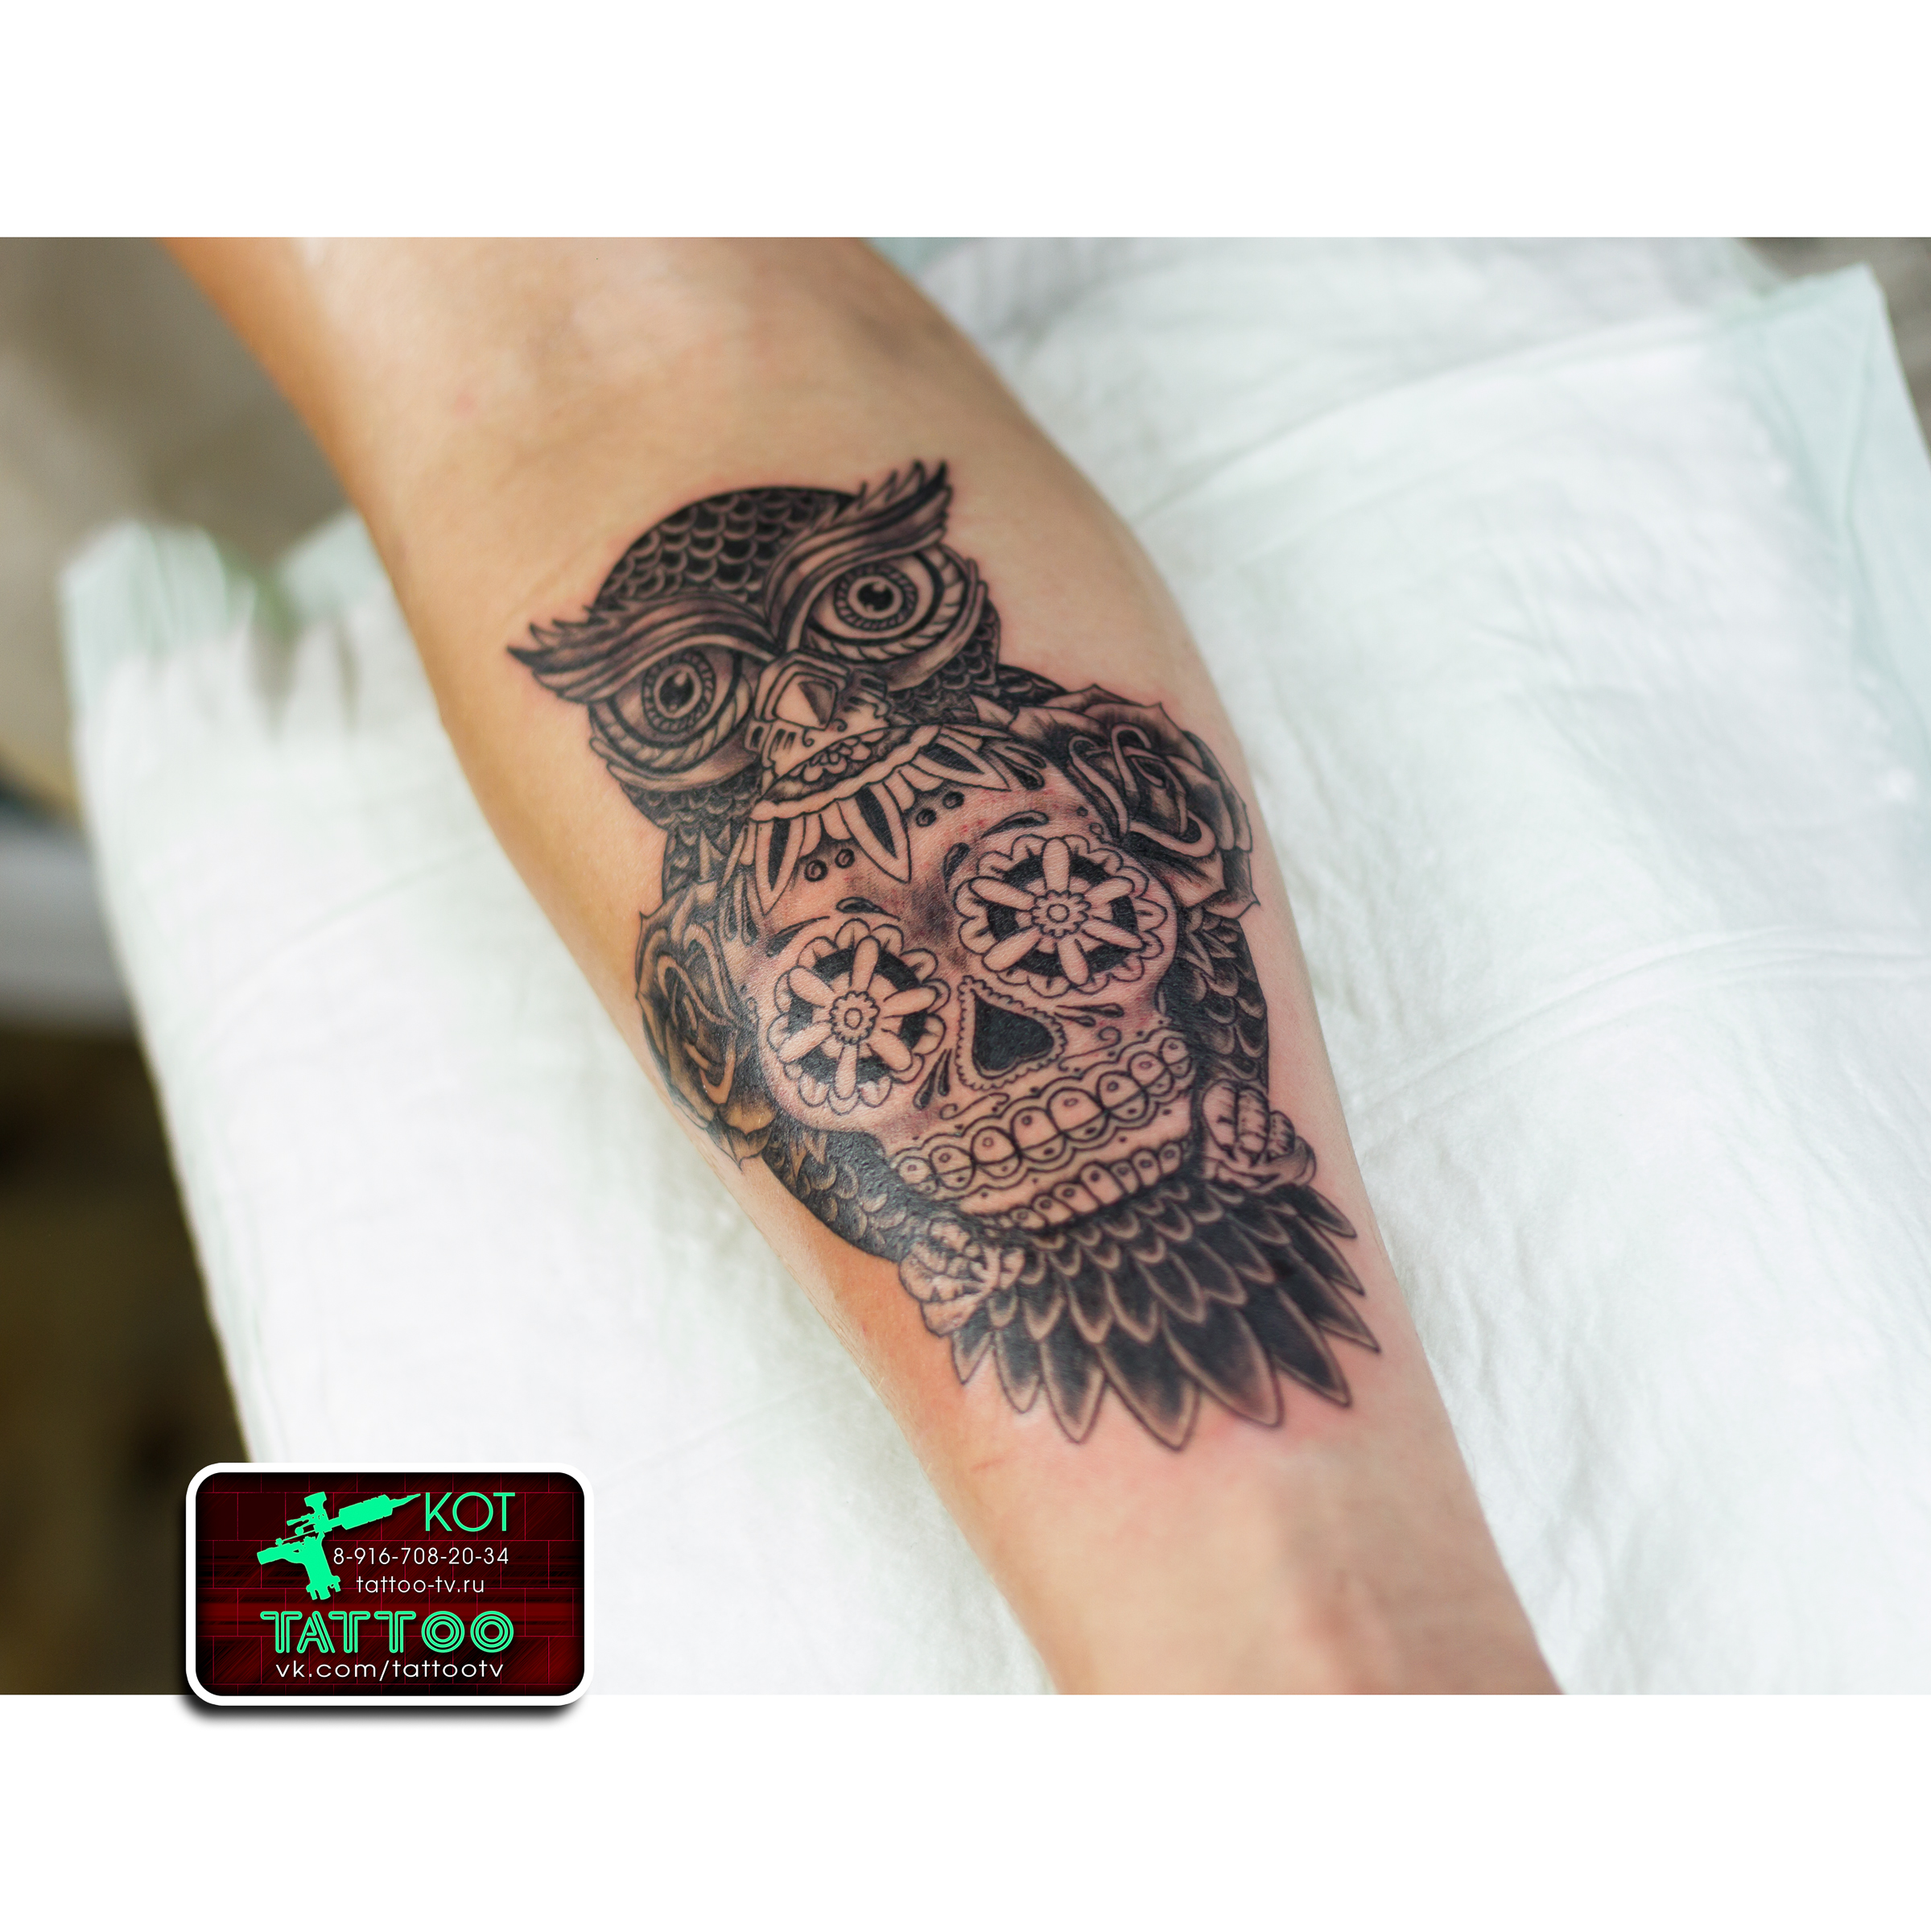 500 Best Mens Tattoo Ideas amp Design With Meaning 2019